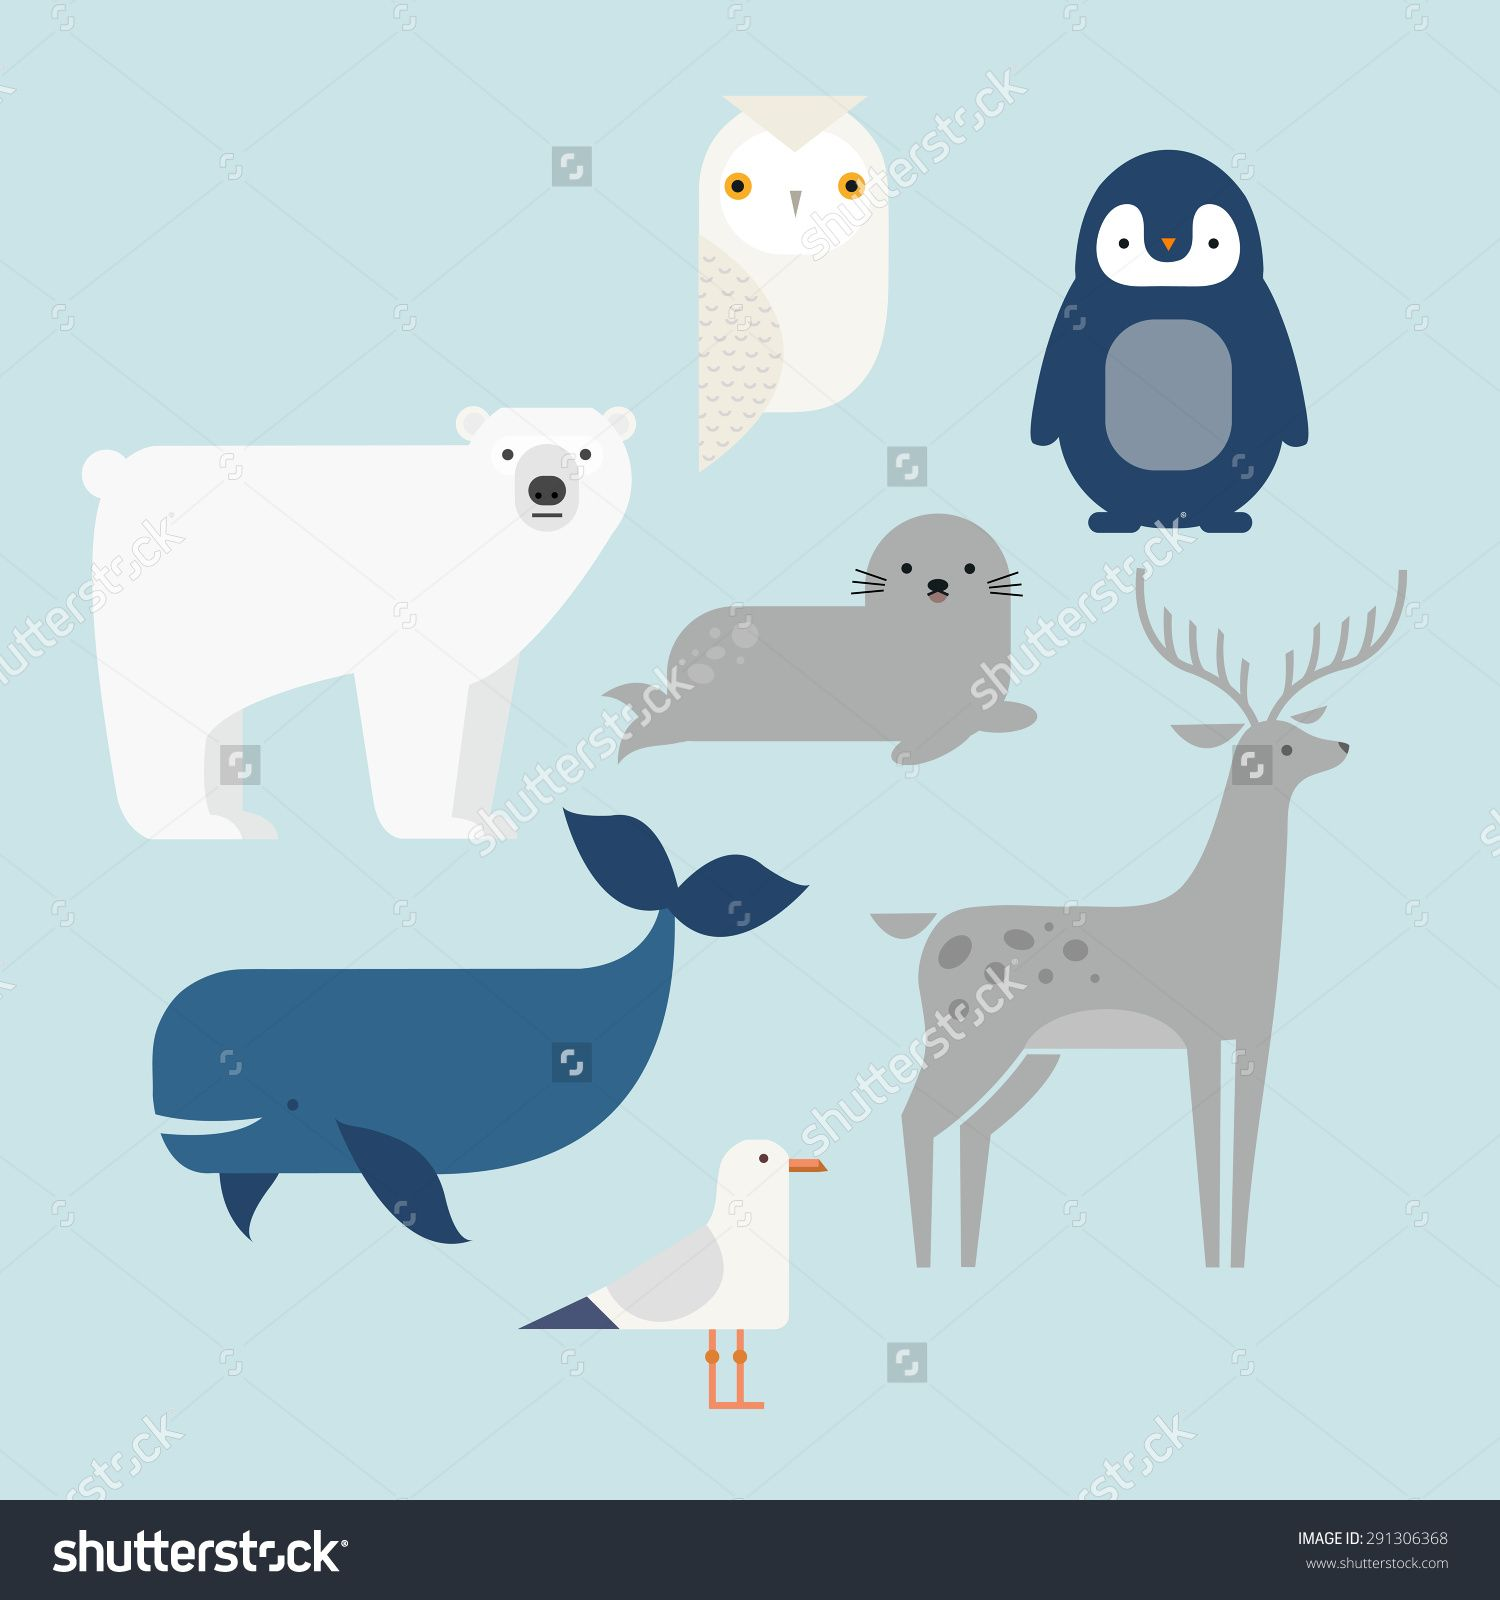 Funny Birthday Cards For Friends also Cartoon Alphabet For Children Letter X And Objects Isolated On White 463993 also 532339618428286823 in addition How To Draw A Cute Vector Dog Character In Illustrator likewise Cute Little Penguin 168388746. on cute cartoon drawn whales